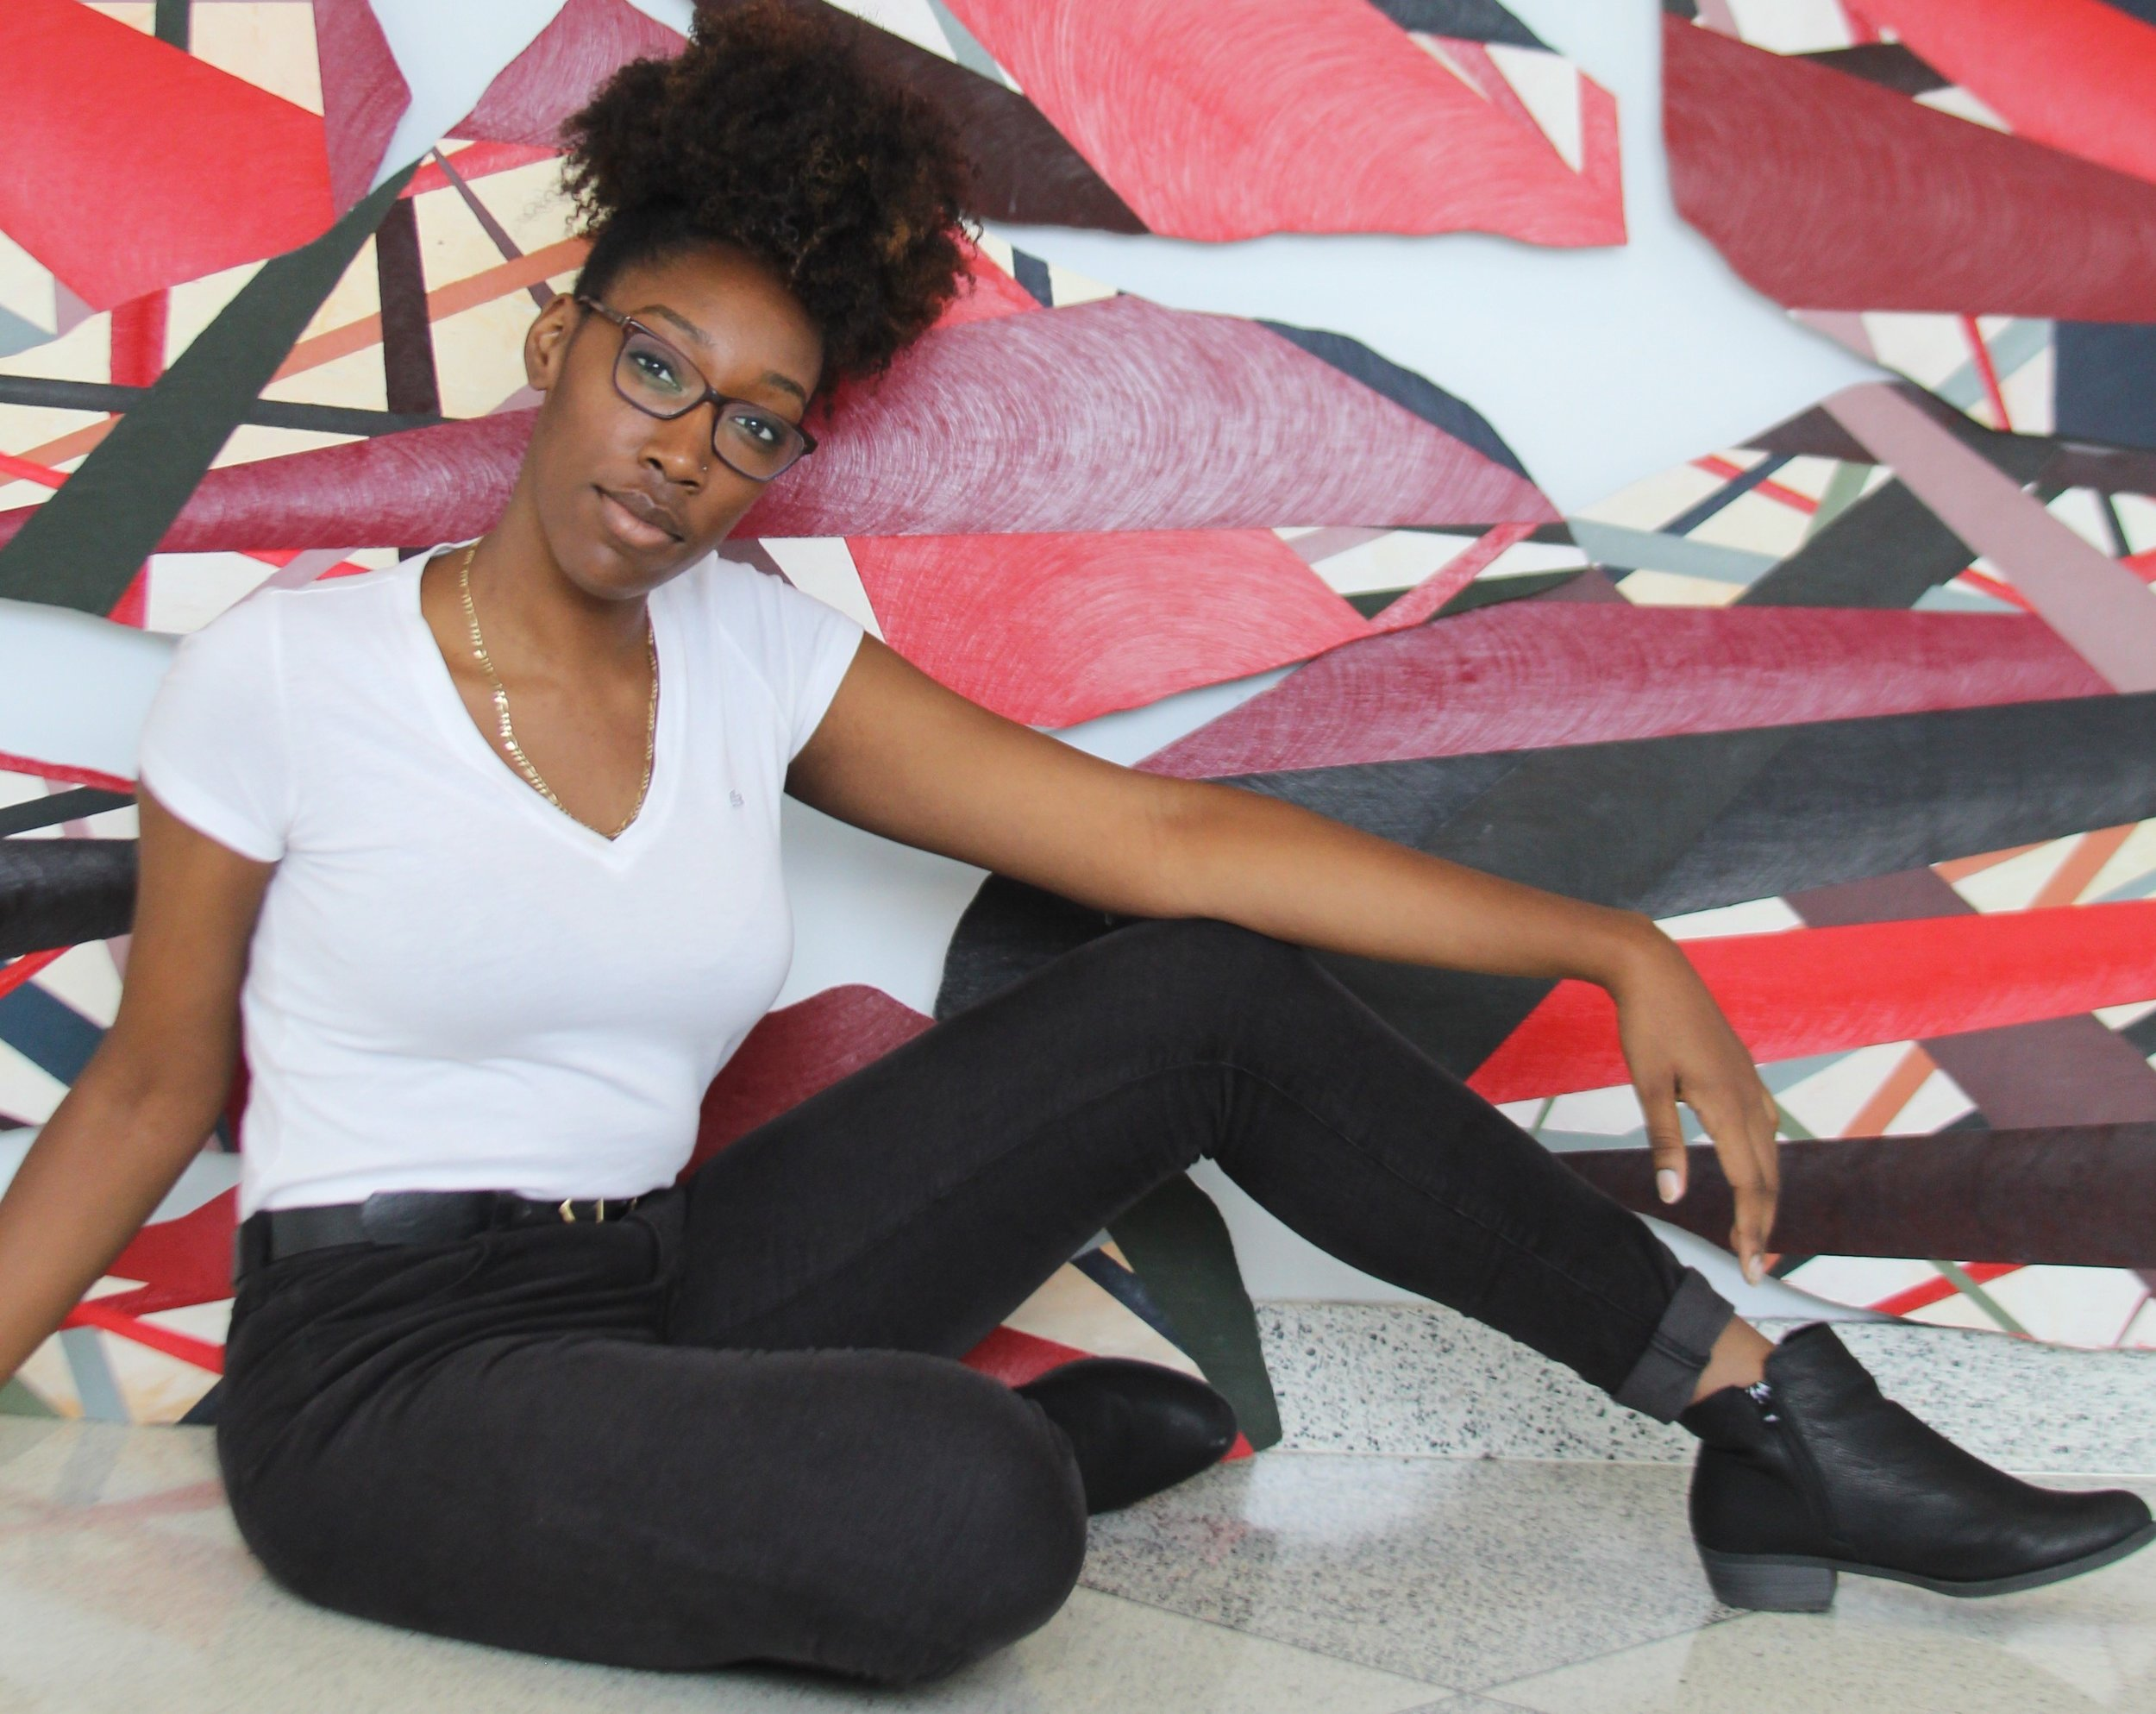 Faith Beadle Wants Students to Live Their Stories   A Psychology and Africology and African American studies alumna wrote a personal story she wasn't expecting at the College of Liberal Arts. Now she wants other students to do the same.